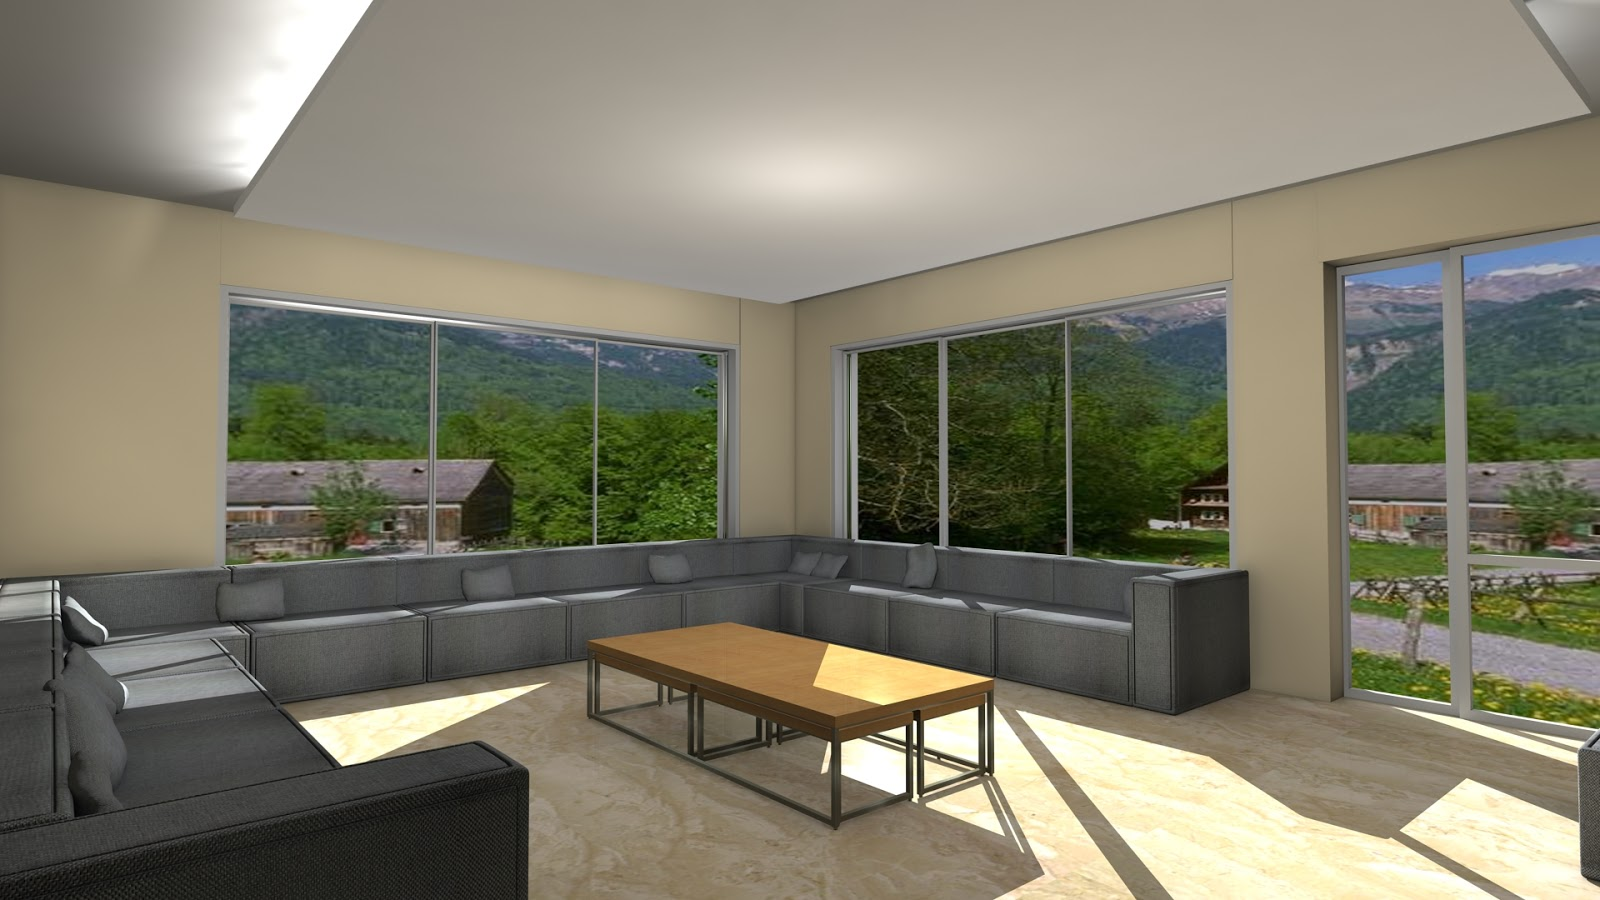 Sajid designer: Living room 3d model interior design 3ds max